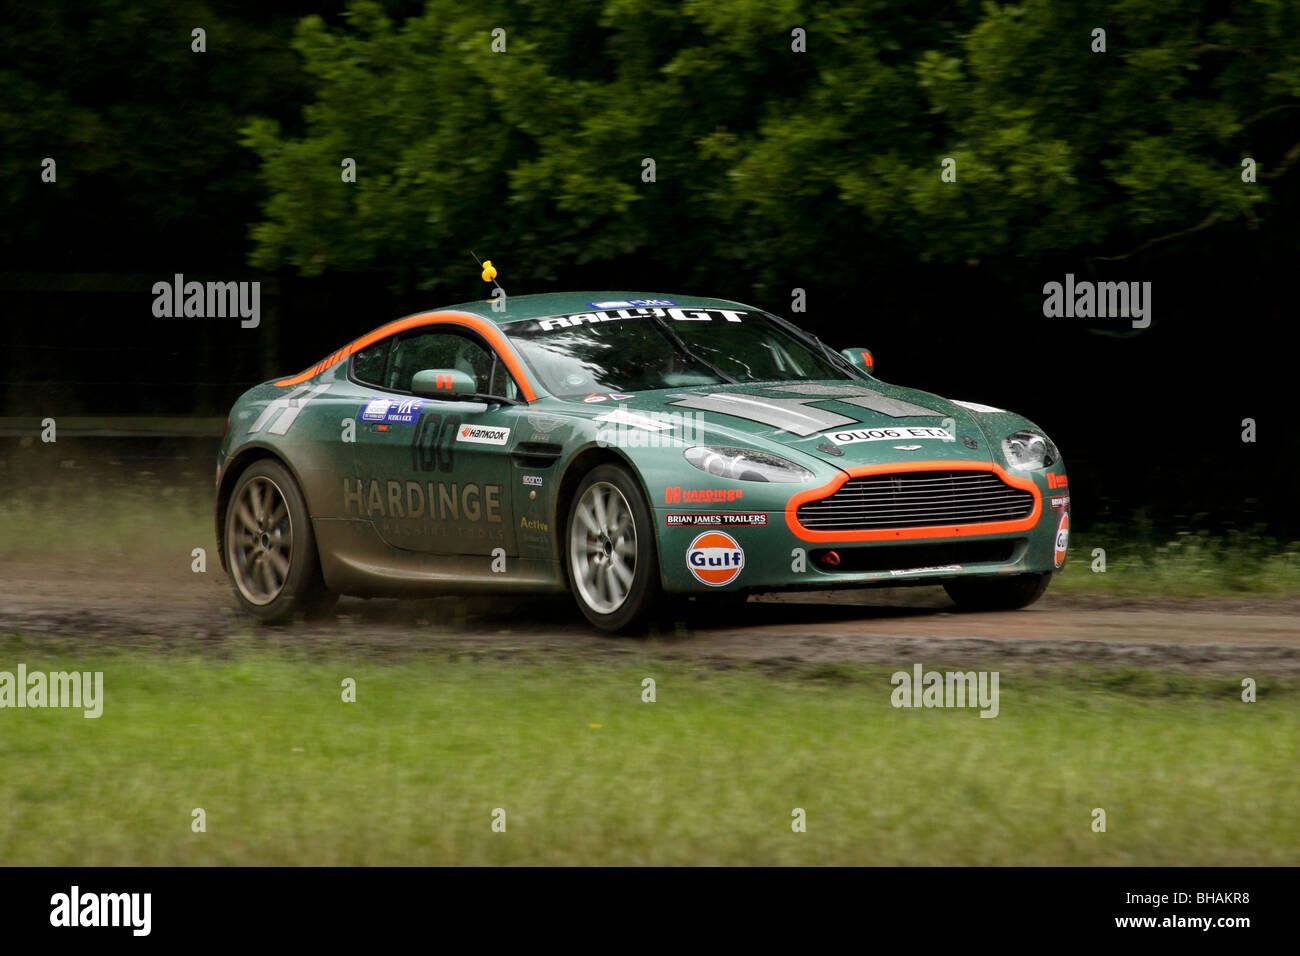 Aston Martin V8 rallying at Chatsworth special stage - Stock Image